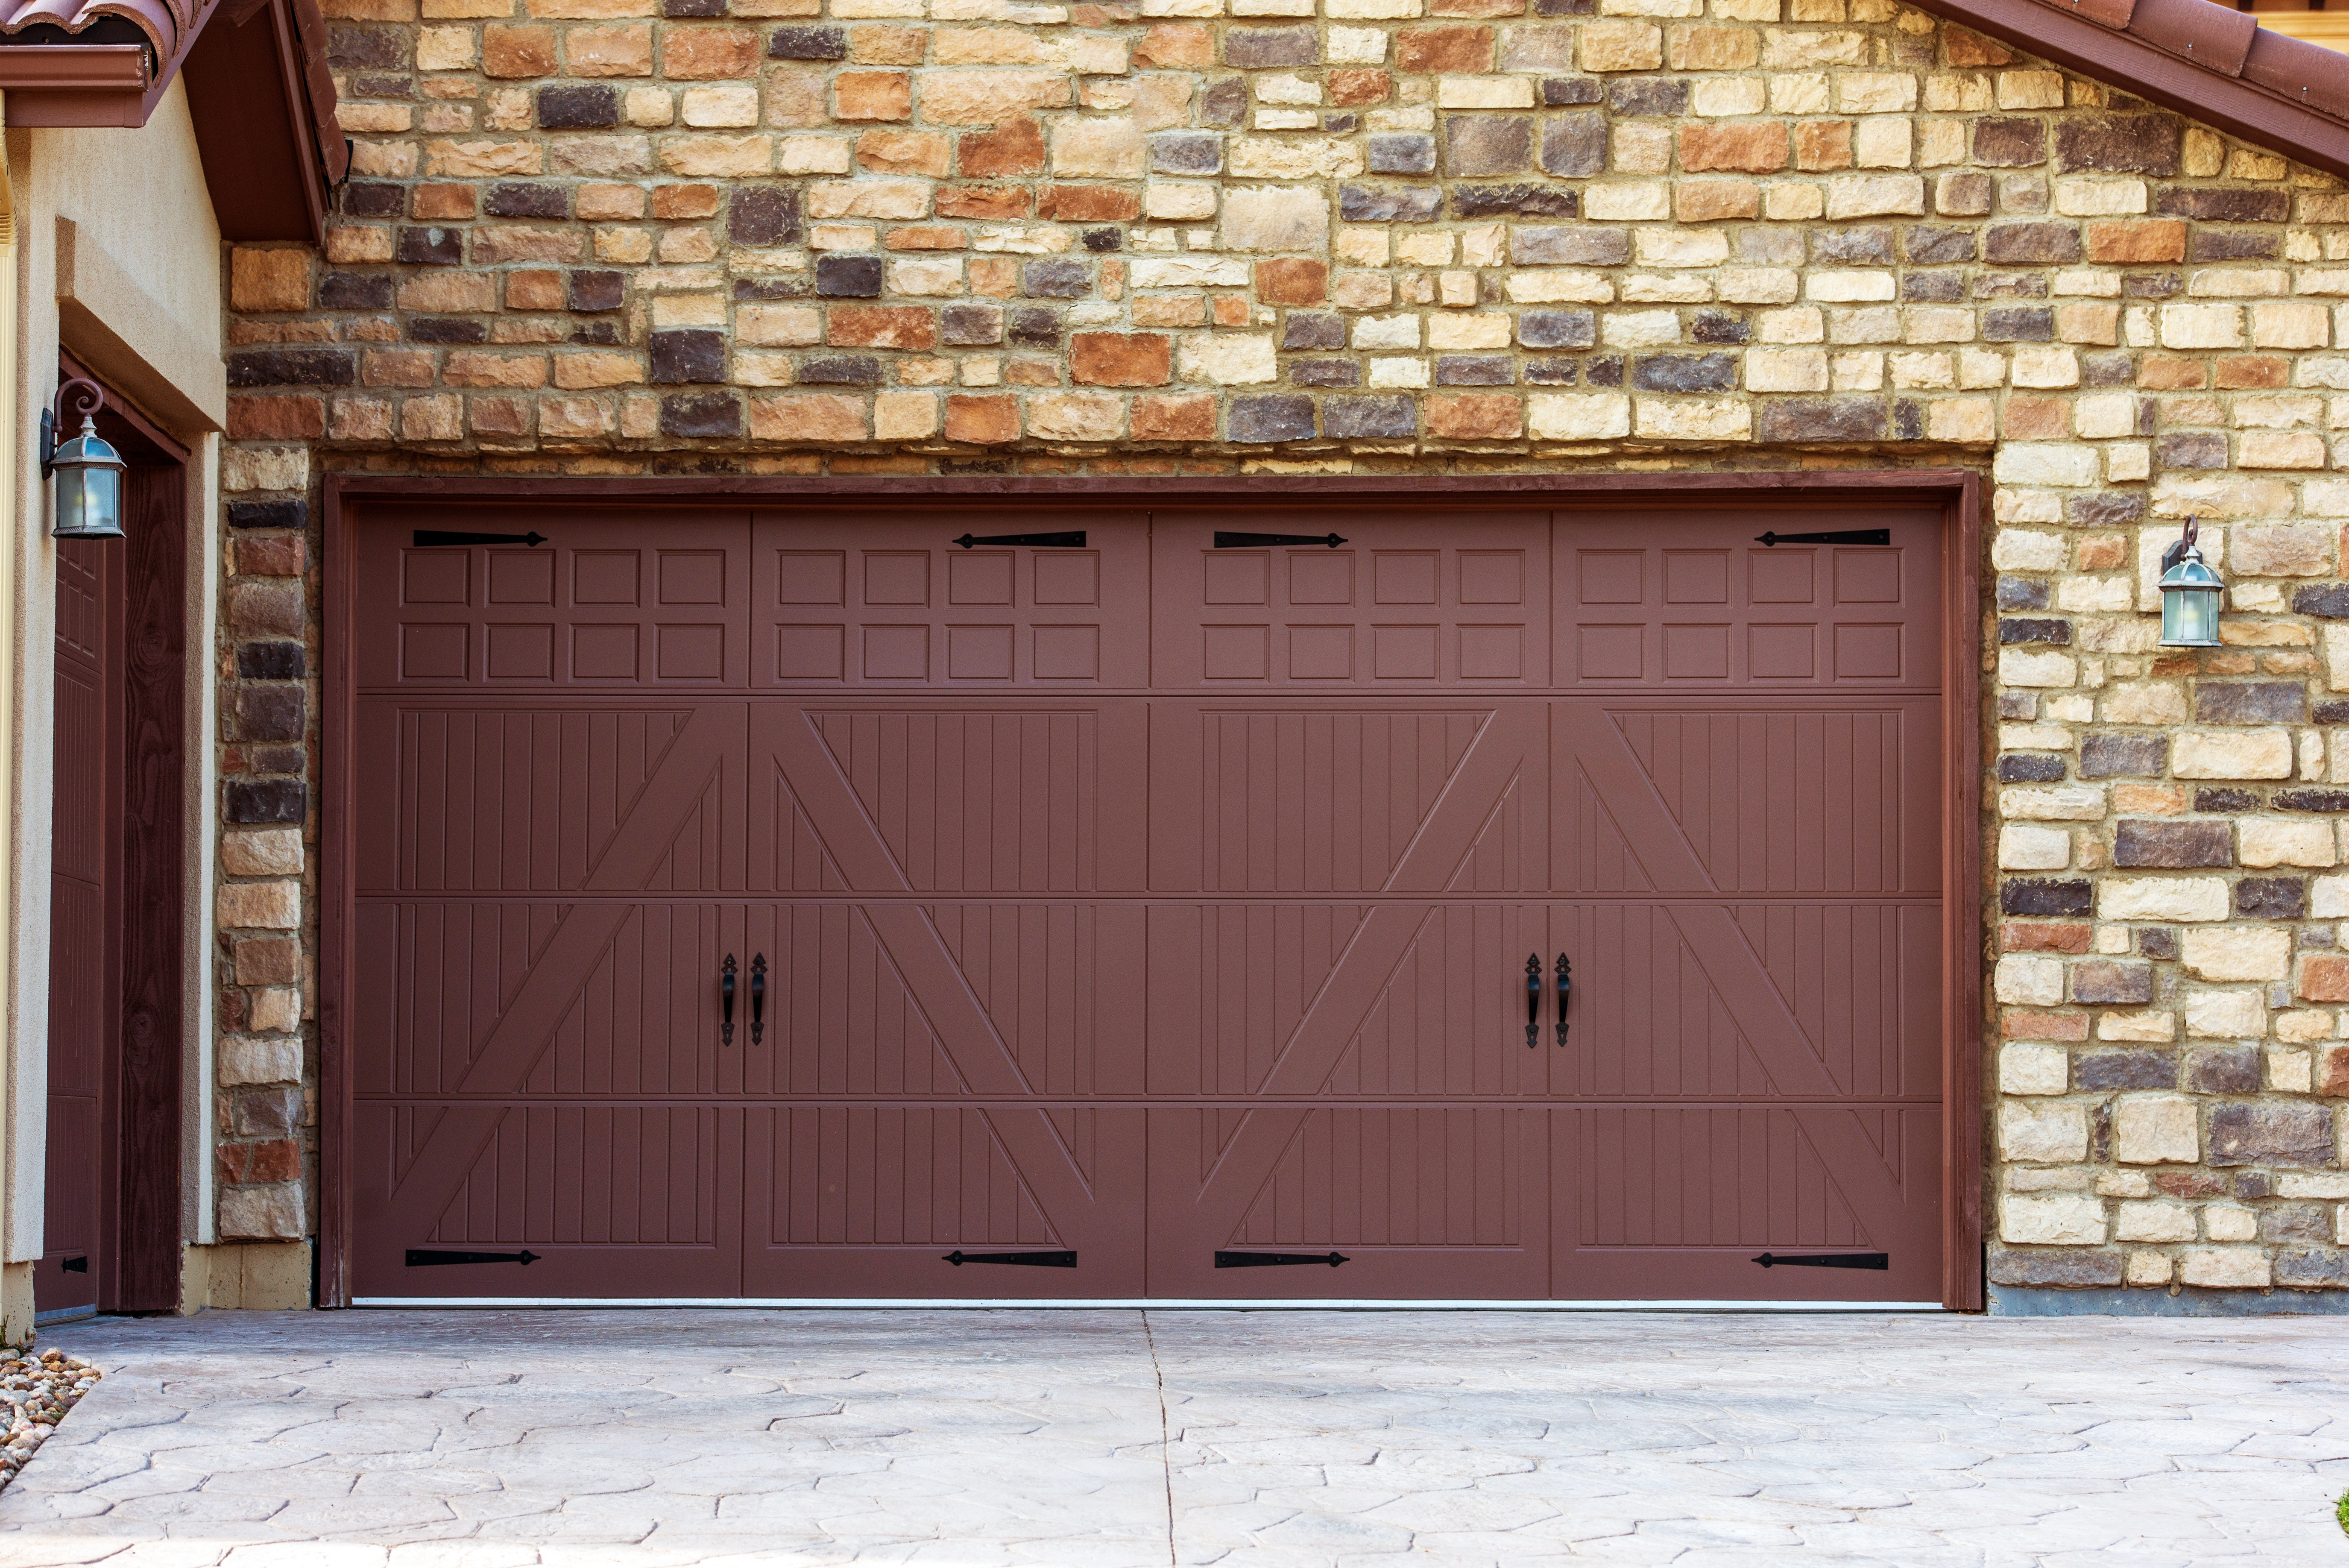 About garage sales service a plus garage doors for Garage door repair west jordan utah